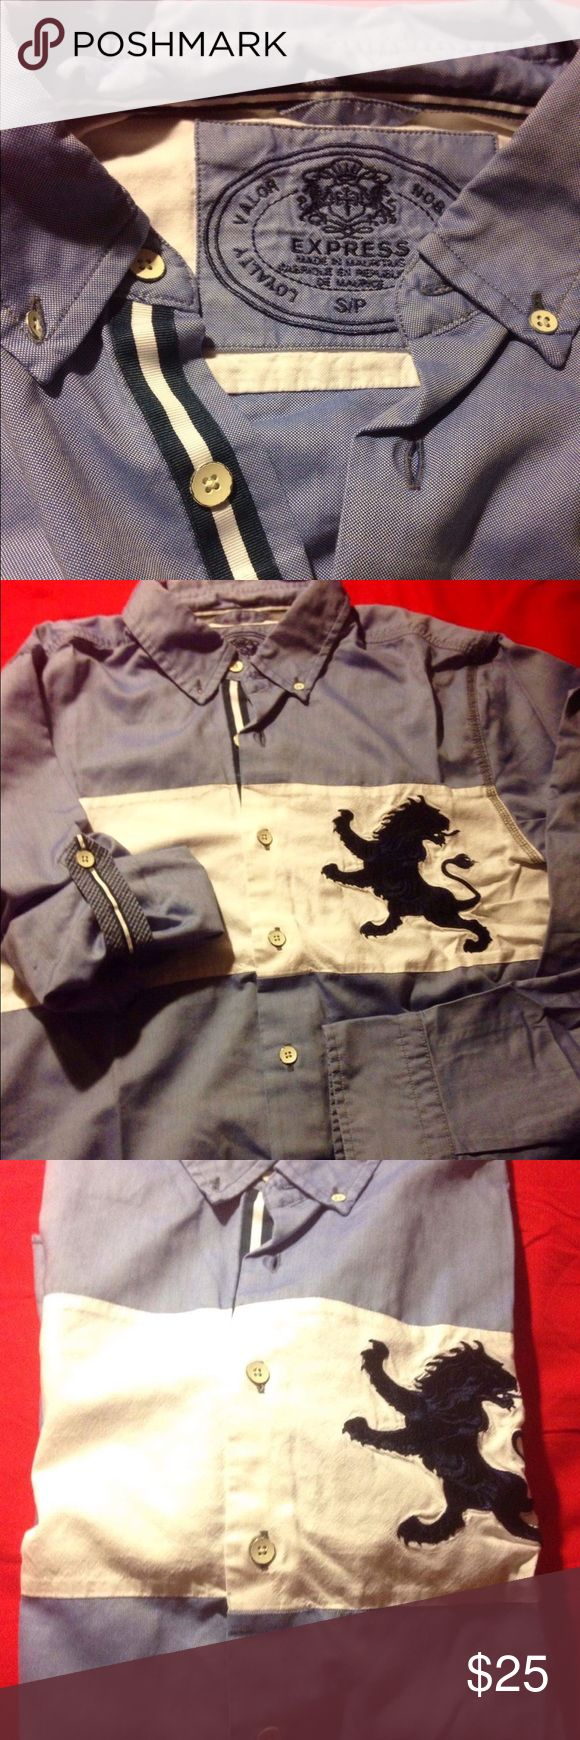 Express button down with roll up sleeves It's an express button down shirt with roll up sleeves. They have buttons in the side to keep it up. Express Shirts Casual Button Down Shirts